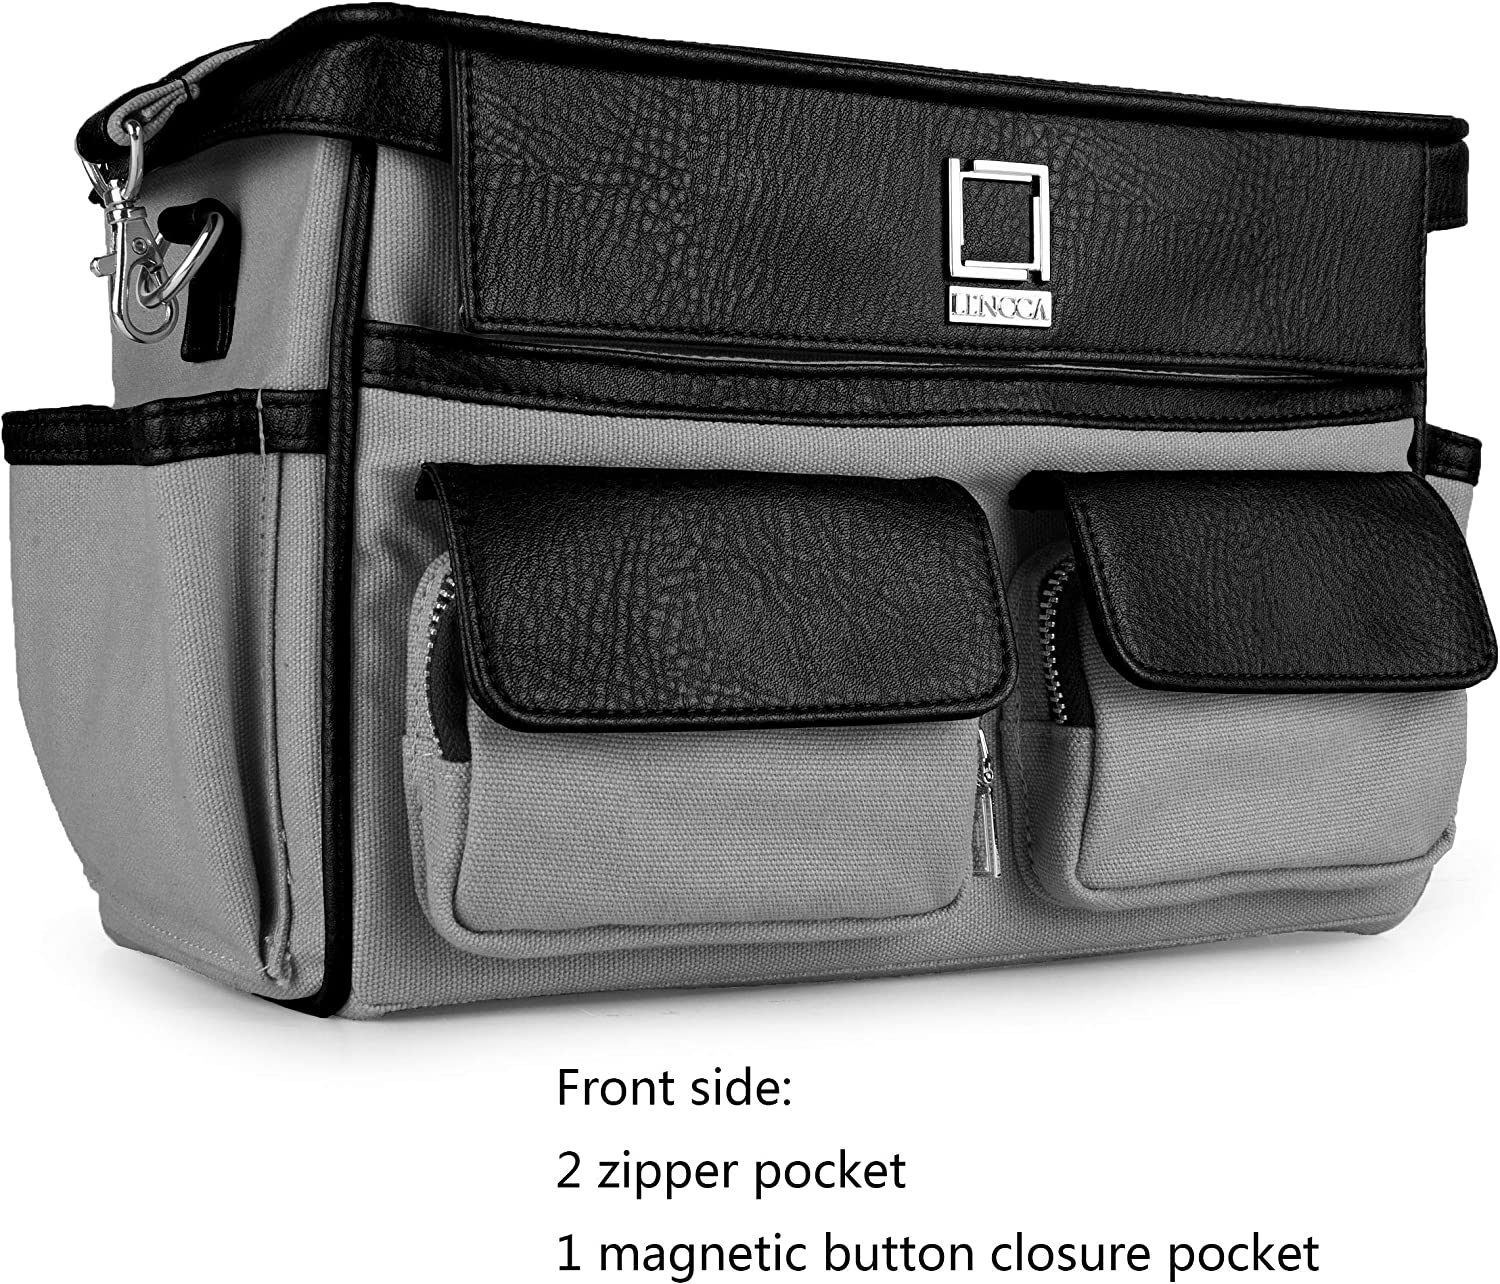 for Panasonic for Nikon for Kodak Professional Large Capacity Canvas DSLR SLR Padded Camera Case Bag with Shoulder Strap for Canon for Leica for Fujifilm for Olympus for Sony for Pentax